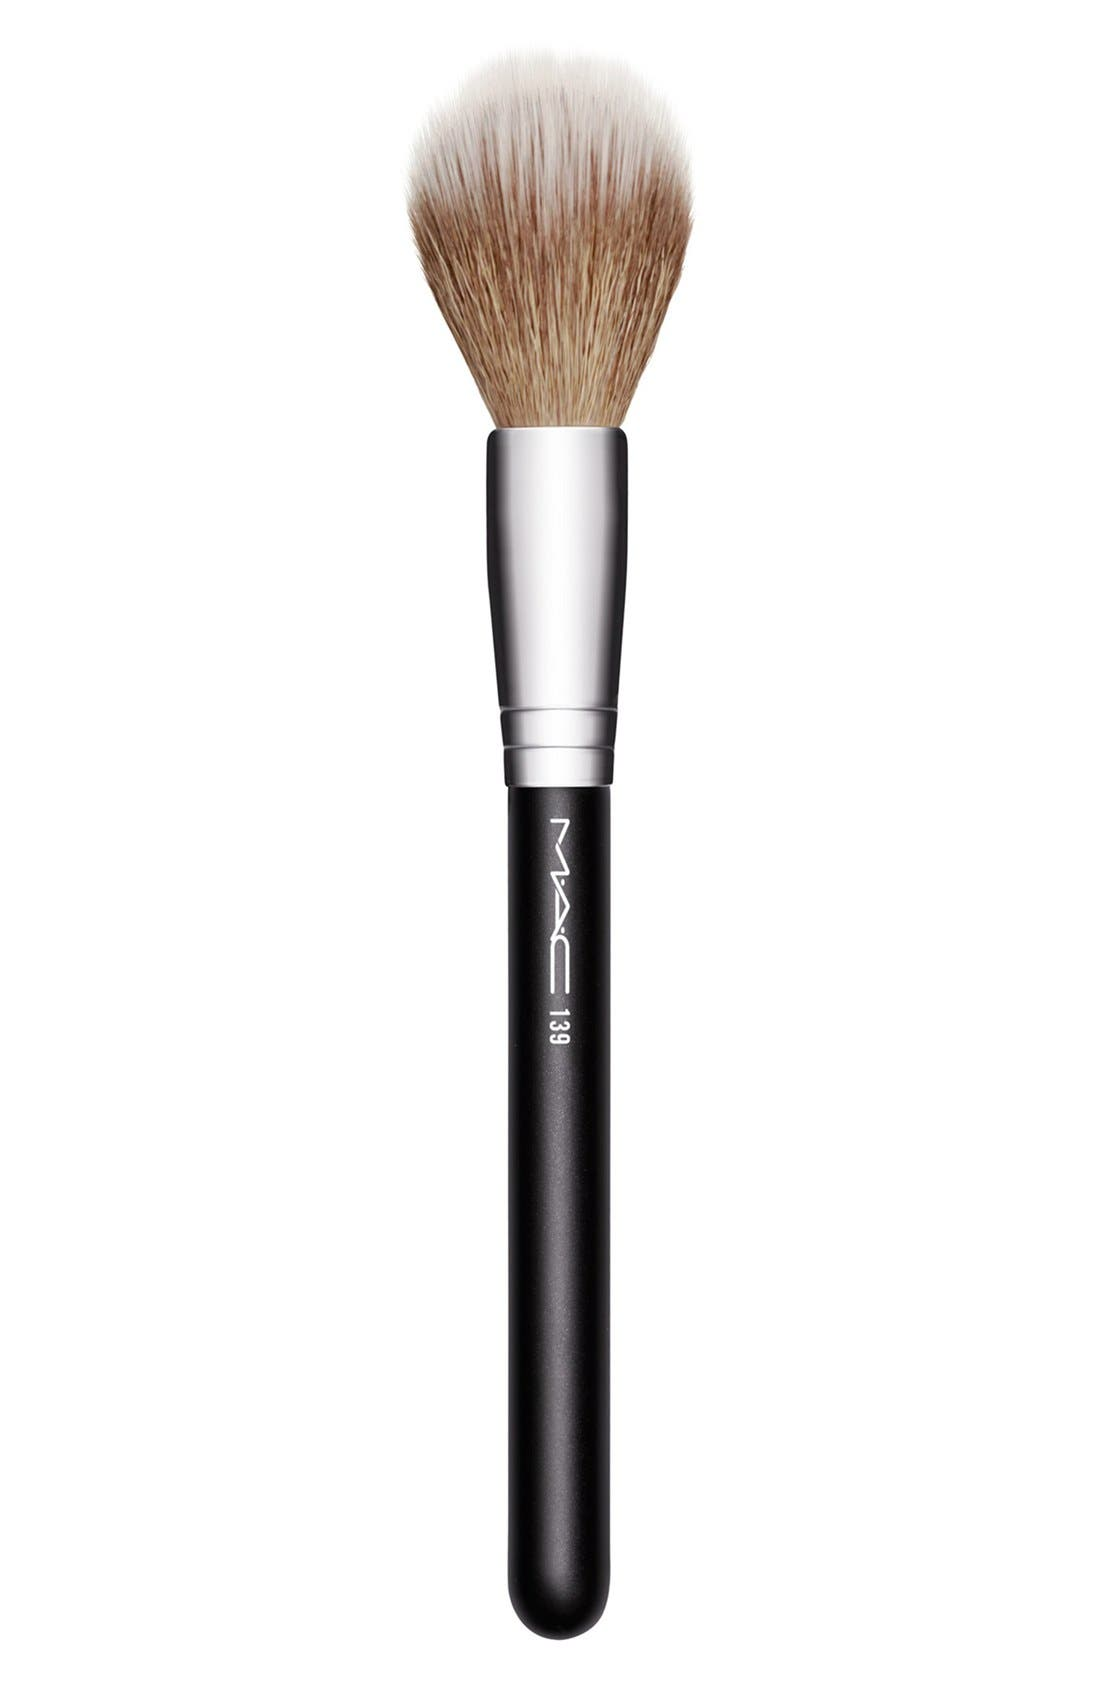 MAC COSMETICS,                             M·A·C 139 Duo Fibre Tapered Face Brush,                             Main thumbnail 1, color,                             000